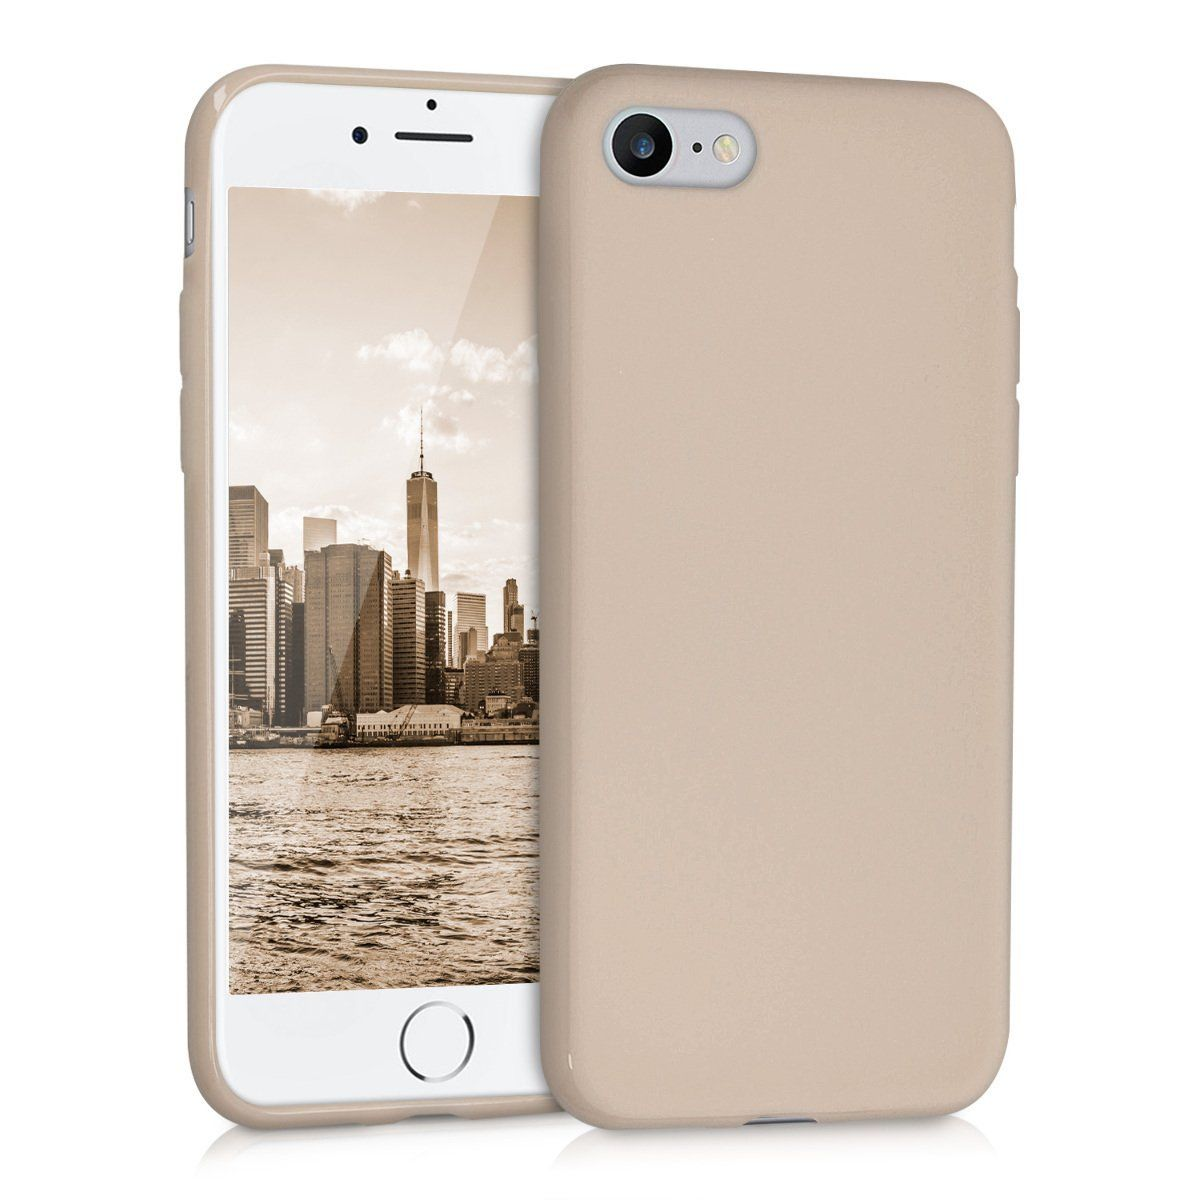 fdbfa685405 kwmobile Chic TPU Silicone Case for the Apple iPhone 7 / 8 in beige matt